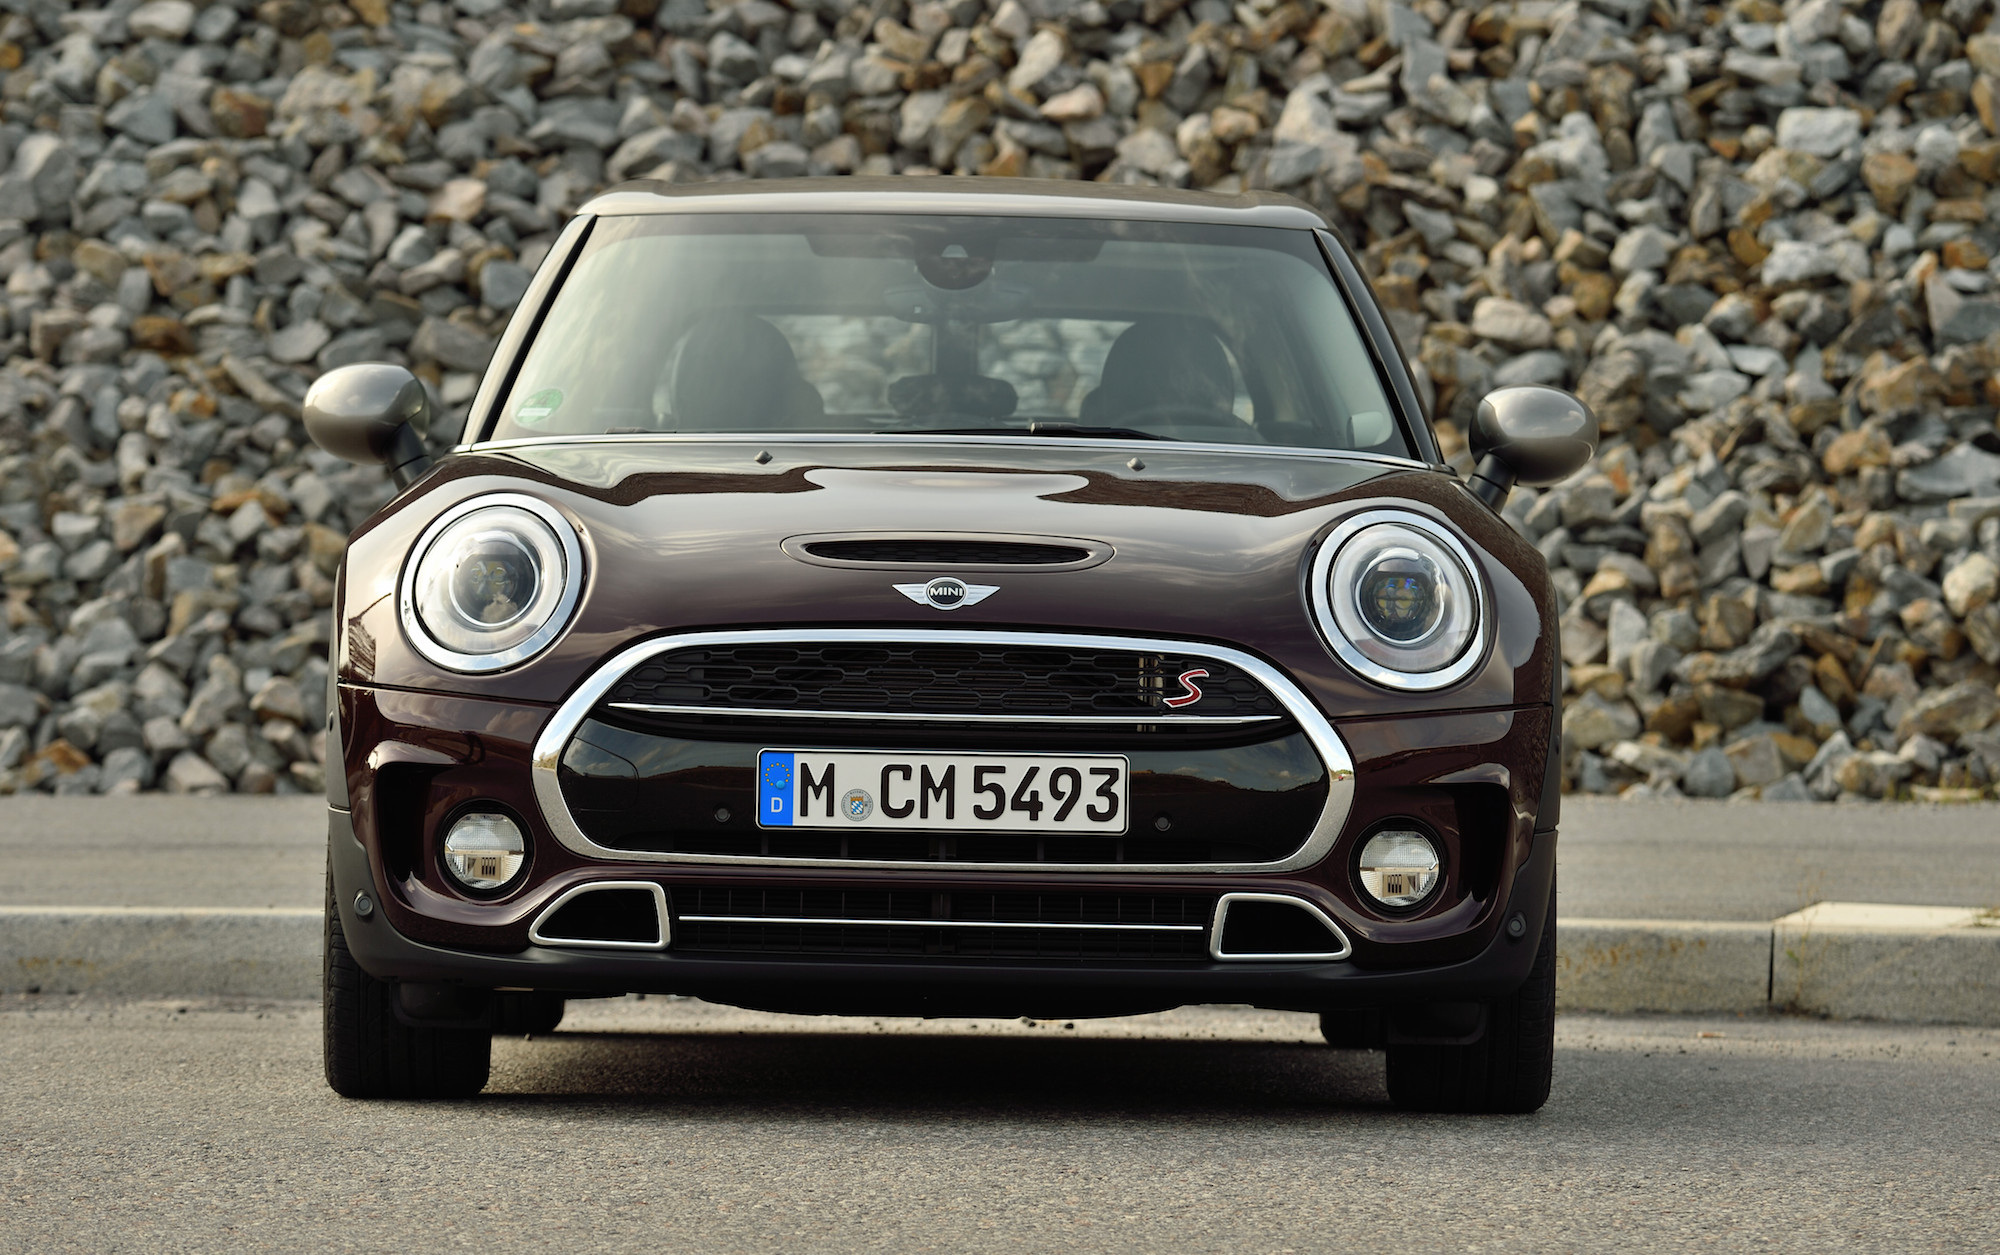 2016 Mini Cooper S Clubman Front End (Photo 8 of 17)